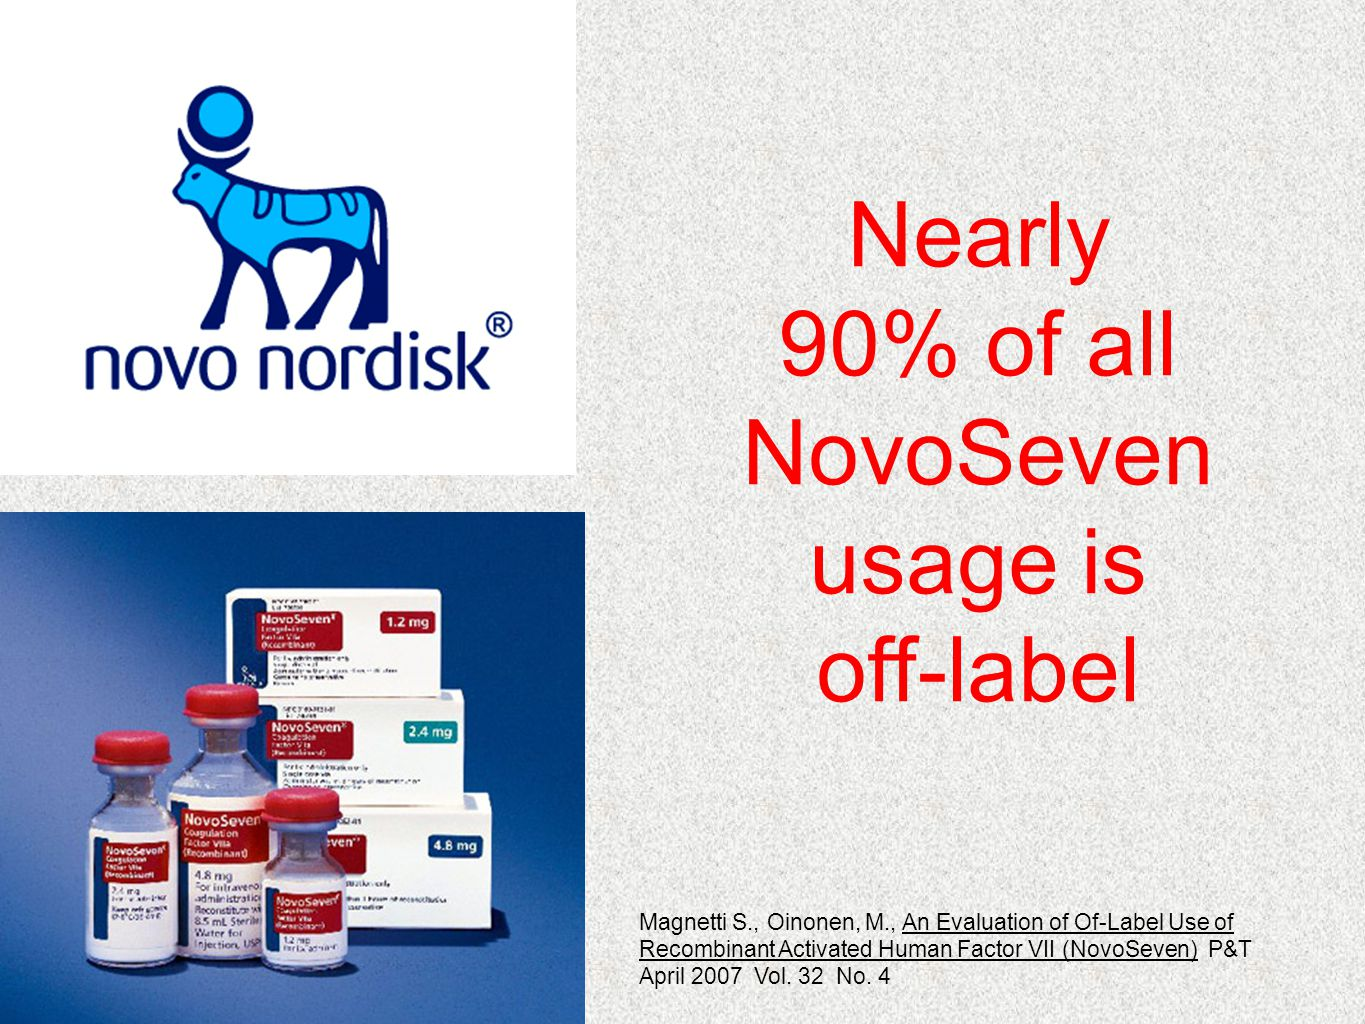 Nearly 90% of all NovoSeven usage is off-label